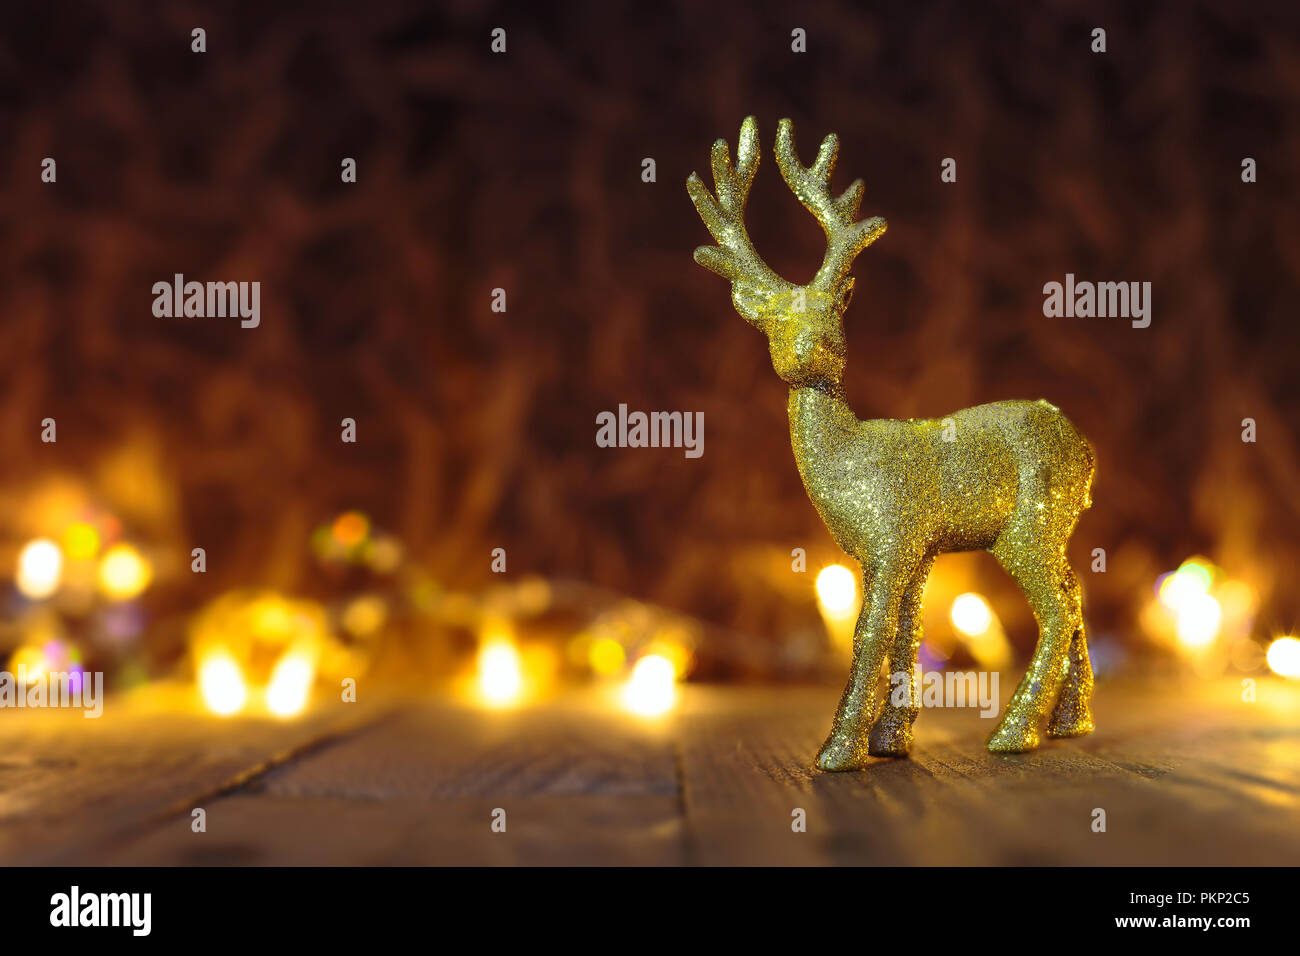 Christmas or New Year golden Reindeer background with lights and copy space - Stock Image